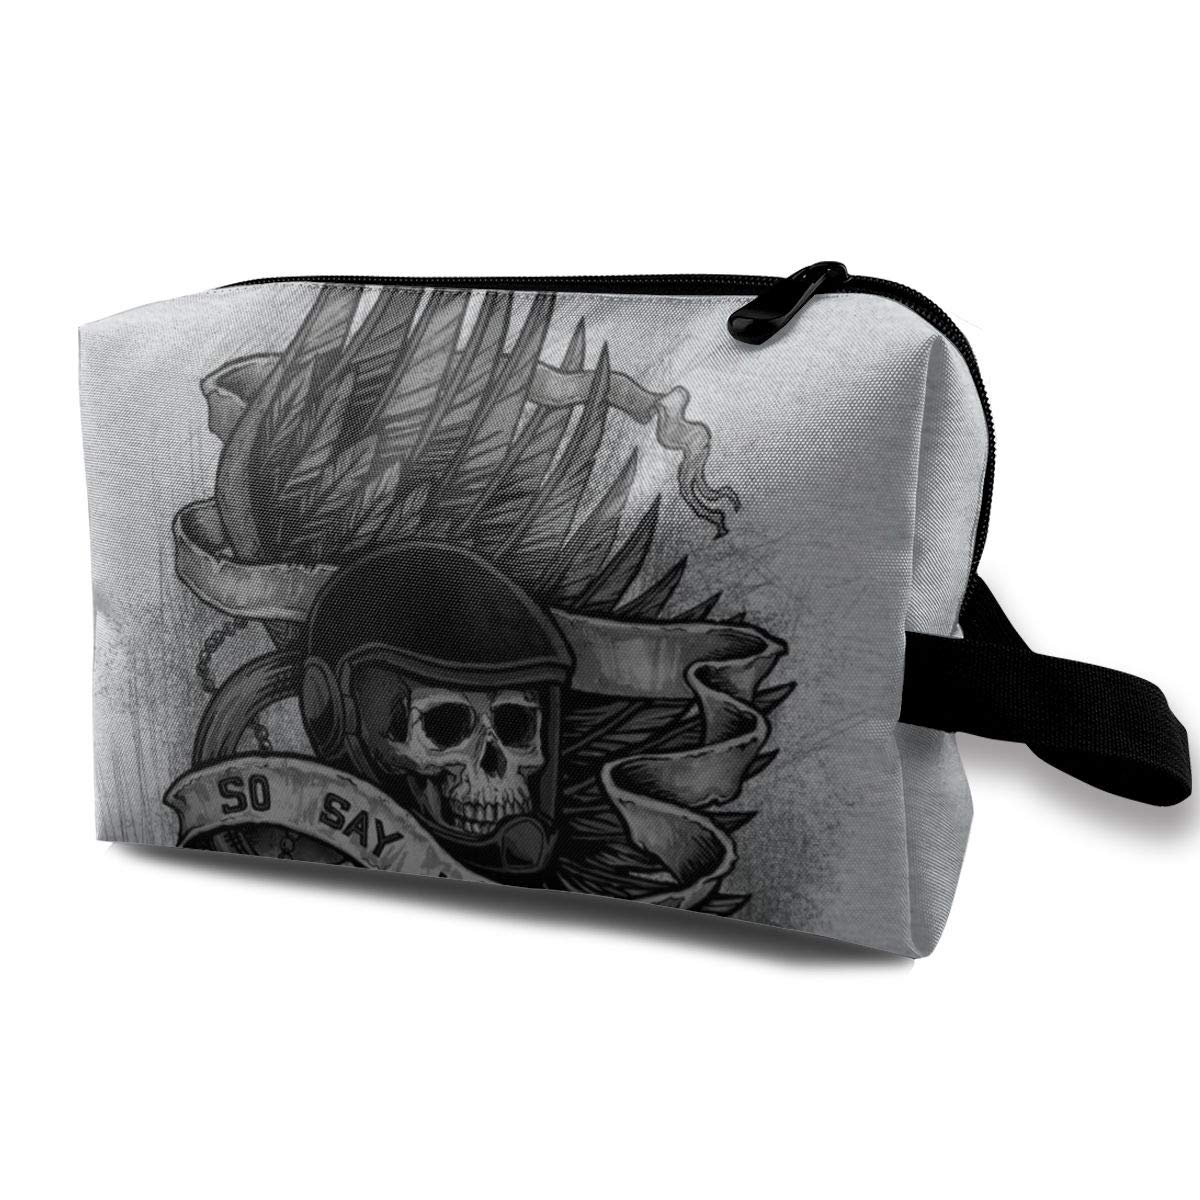 Makeup Bag Cosmetic Pouch Admiral Adama Battlestar Galactica So Say We All Multi-Functional Bag Travel Kit Storage Bag